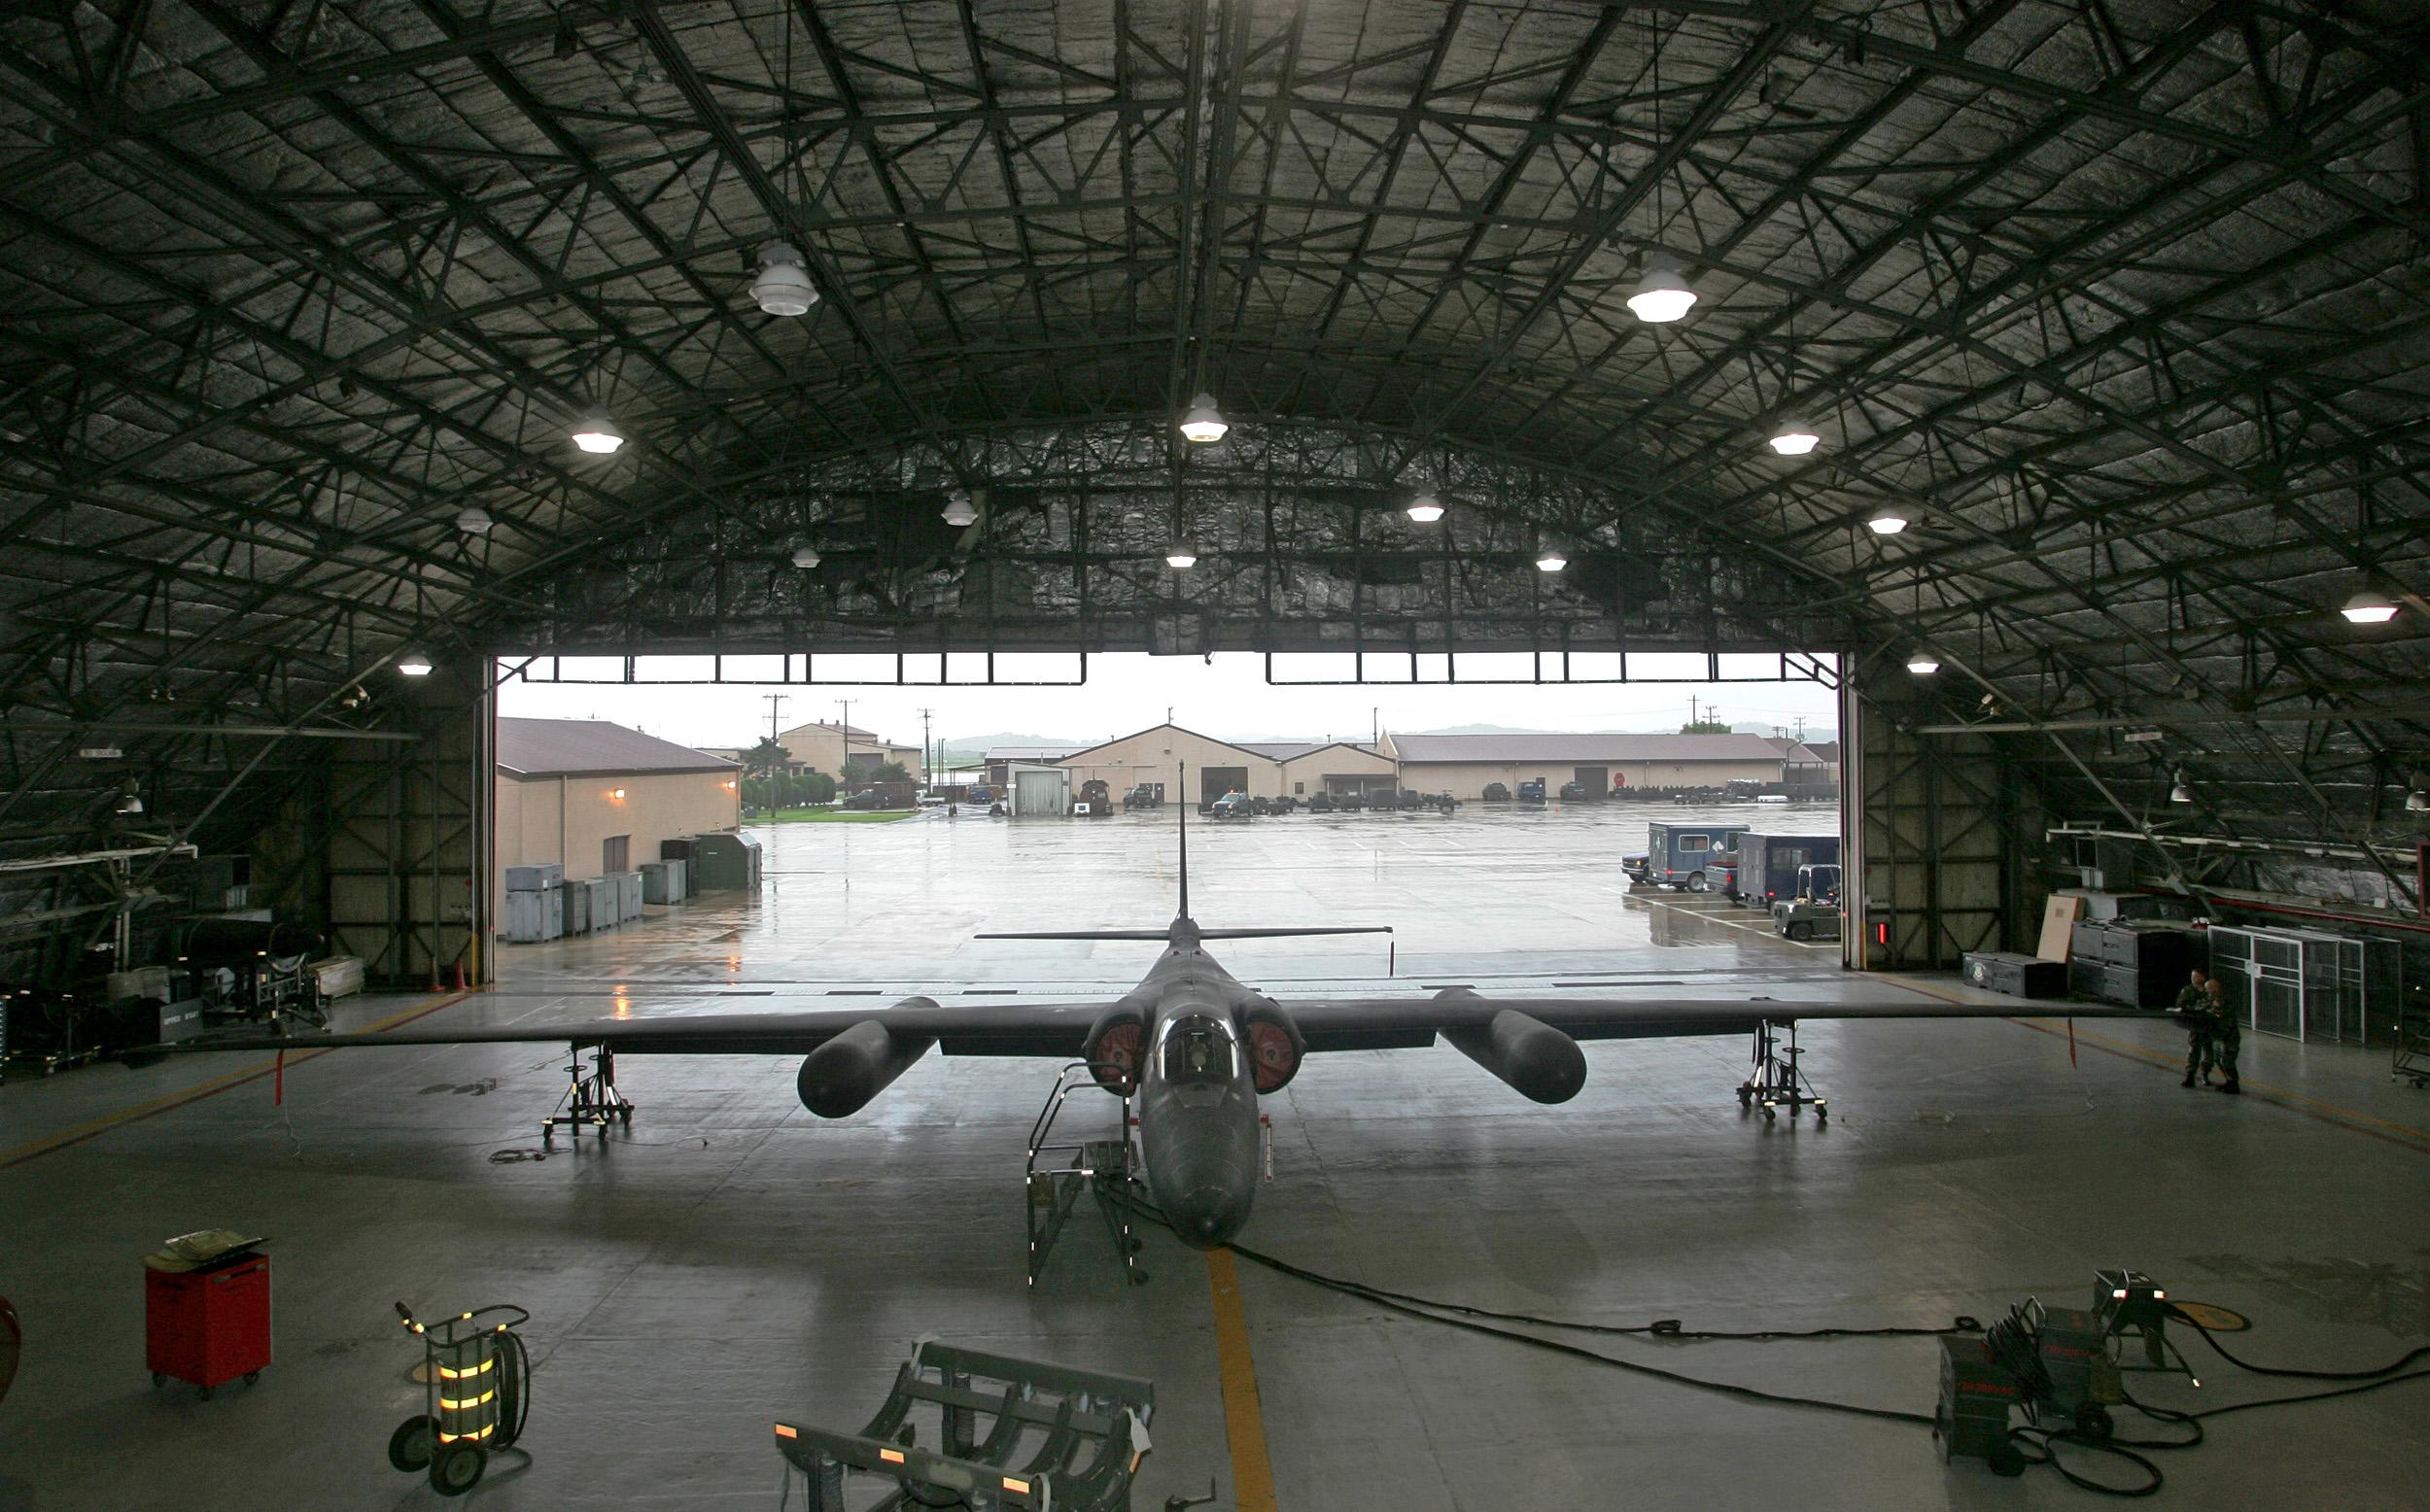 Lockheed U-2 in Hangar